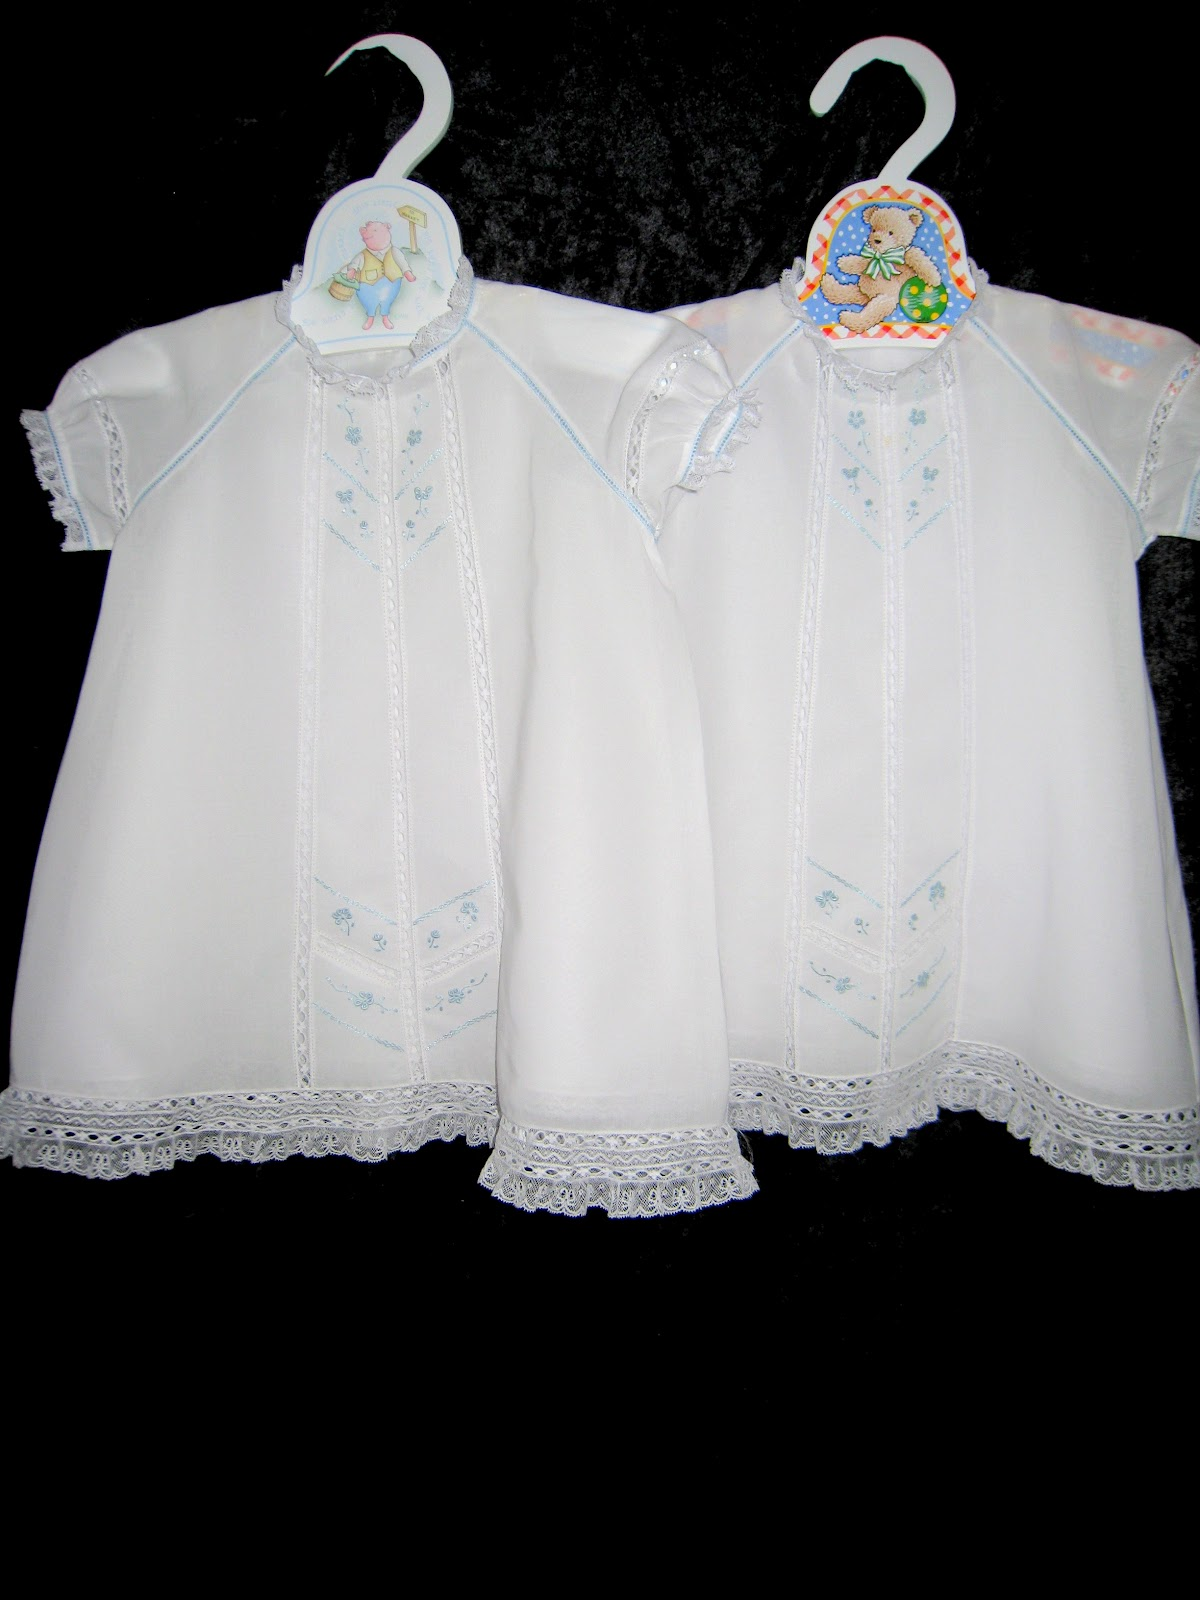 Old Fashioned Baby Clothes Newest and Cutest Baby Clothing